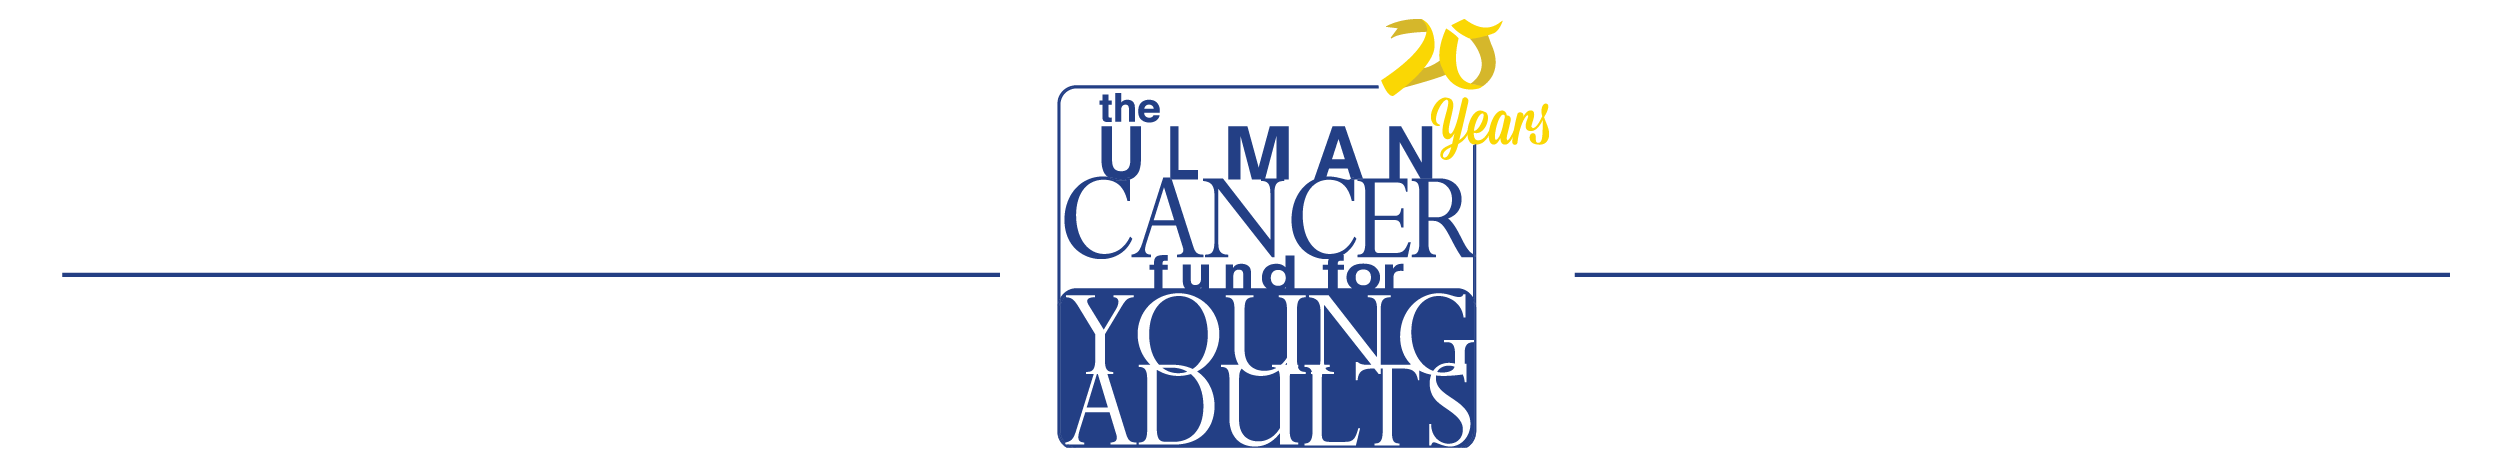 The Ulman Cancer Fund for Young Adults – 2018 – September